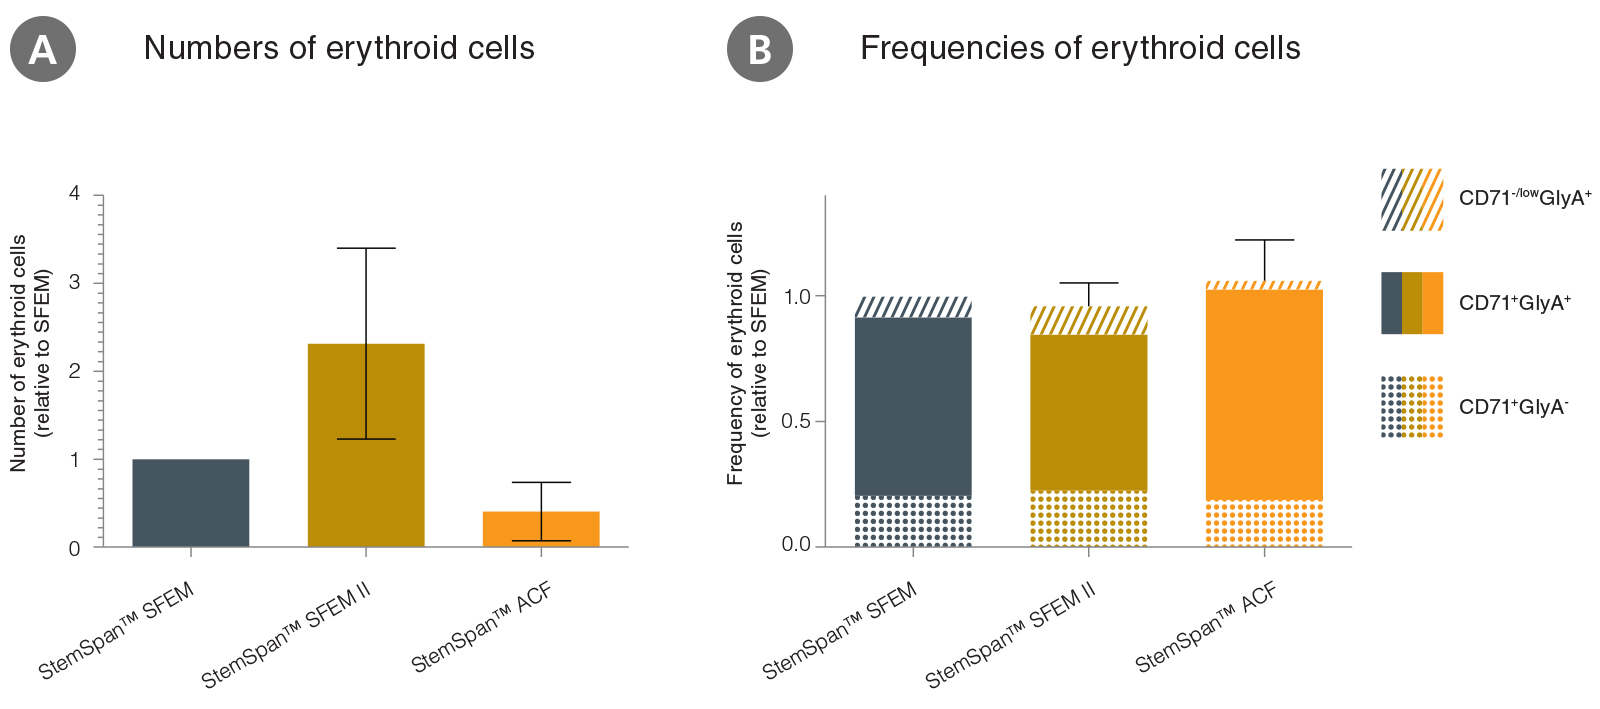 Comparison of the number and frequency of erythroid cells in different StemSpan™ media with Erythroid Expansion Supplement